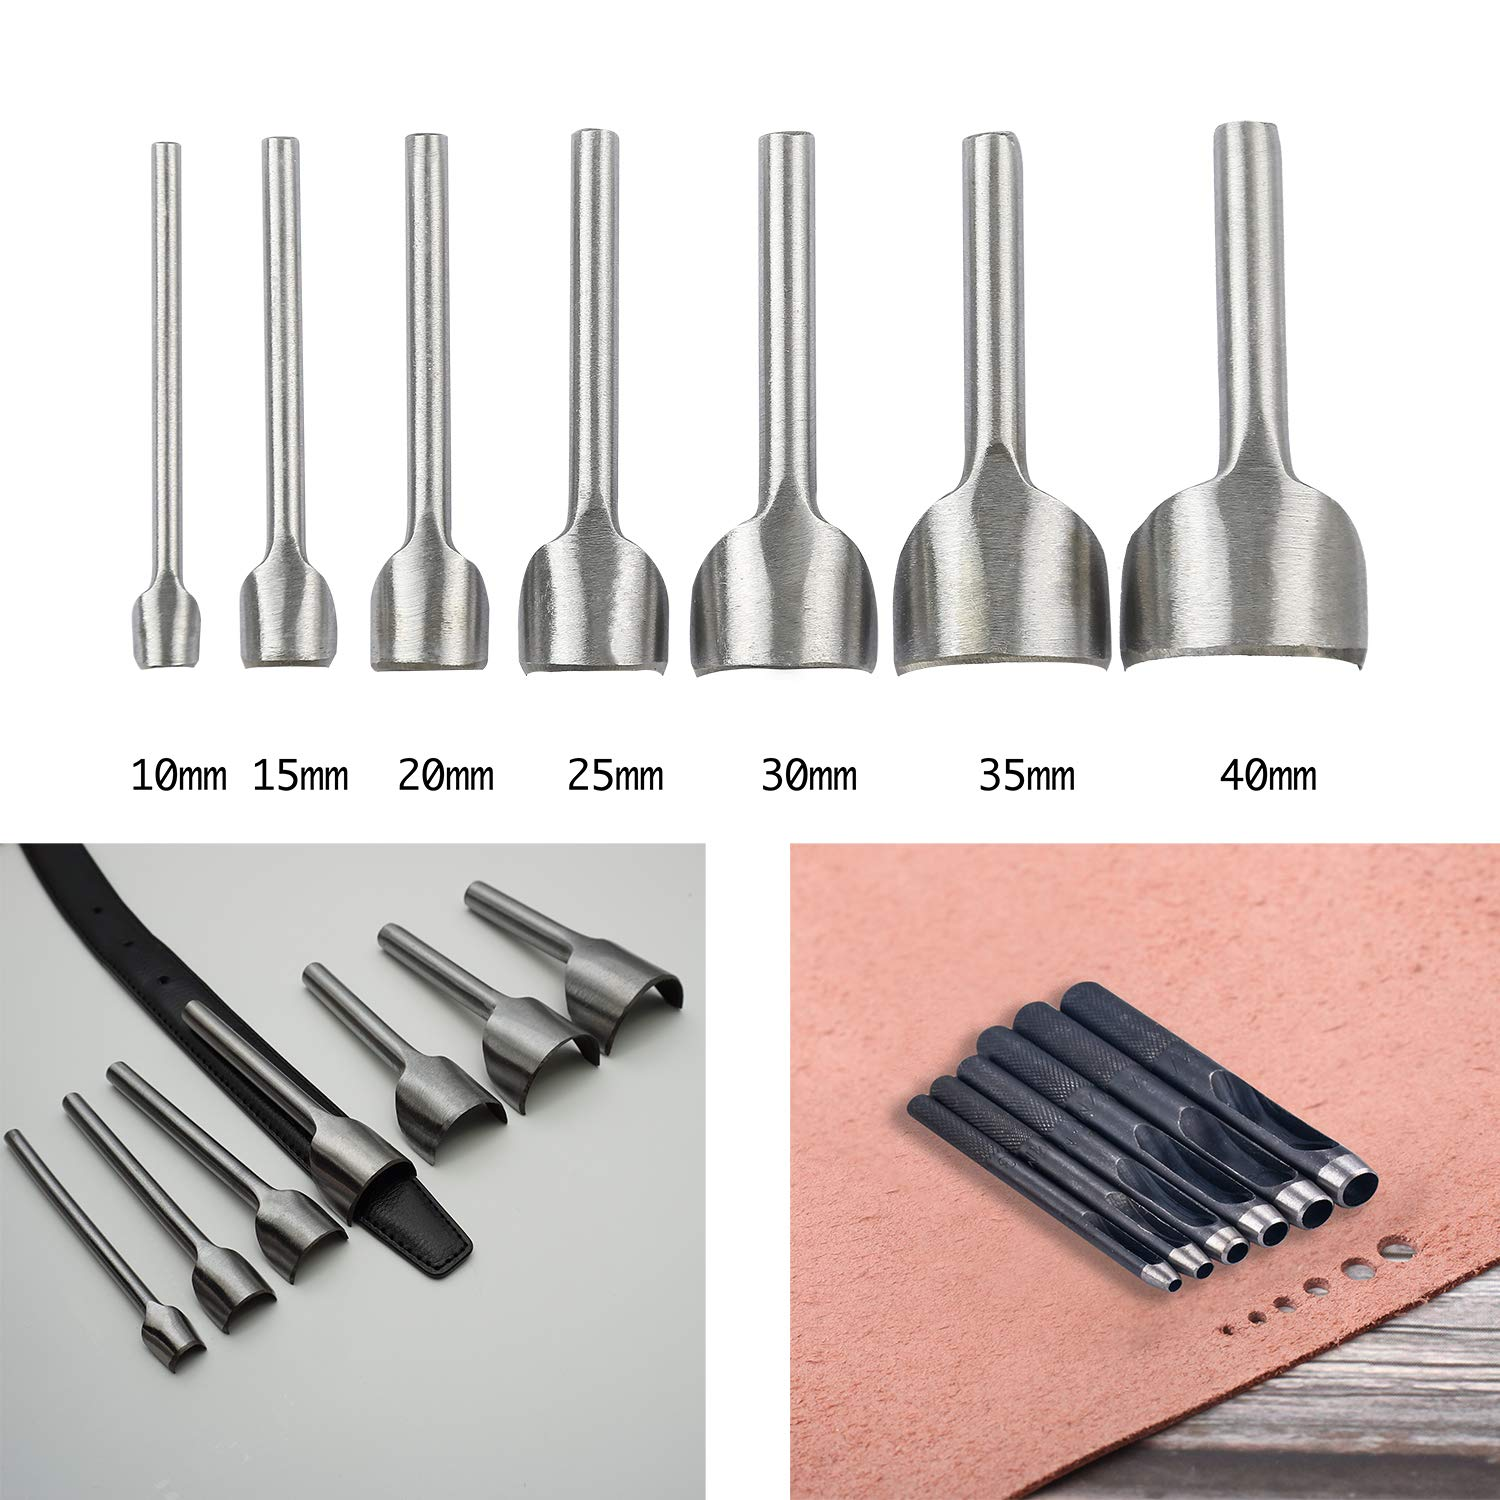 Dorhui 372 Pieces Leather Crafting Tools,Leather Tools Leather Working Tools and Supplies, Leather Craft Stamping Tool, Prong Punch, Hole Hollow Punch, Matting Cut for DIY Leather Artworks by Dorhui (Image #5)